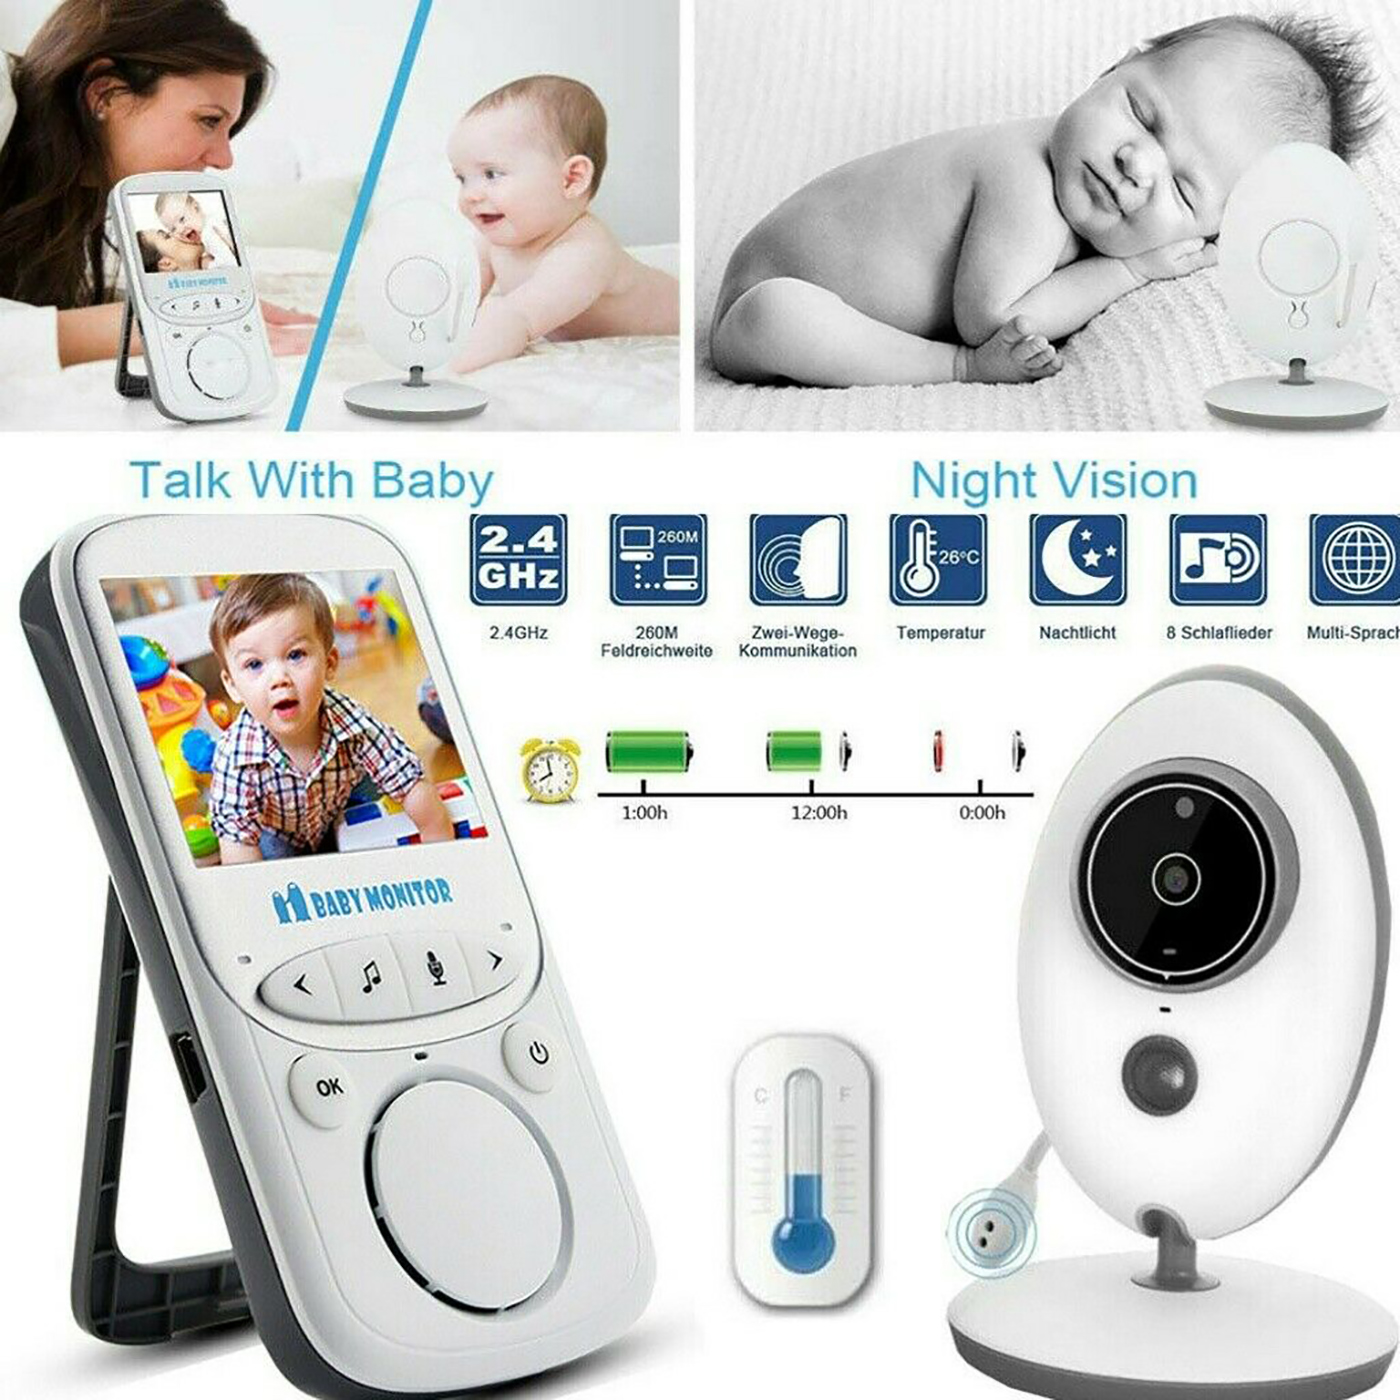 Digital Wireless Babyphone Mit Kamera Video Monitor Nachtsicht 2.4GHz Babypflege